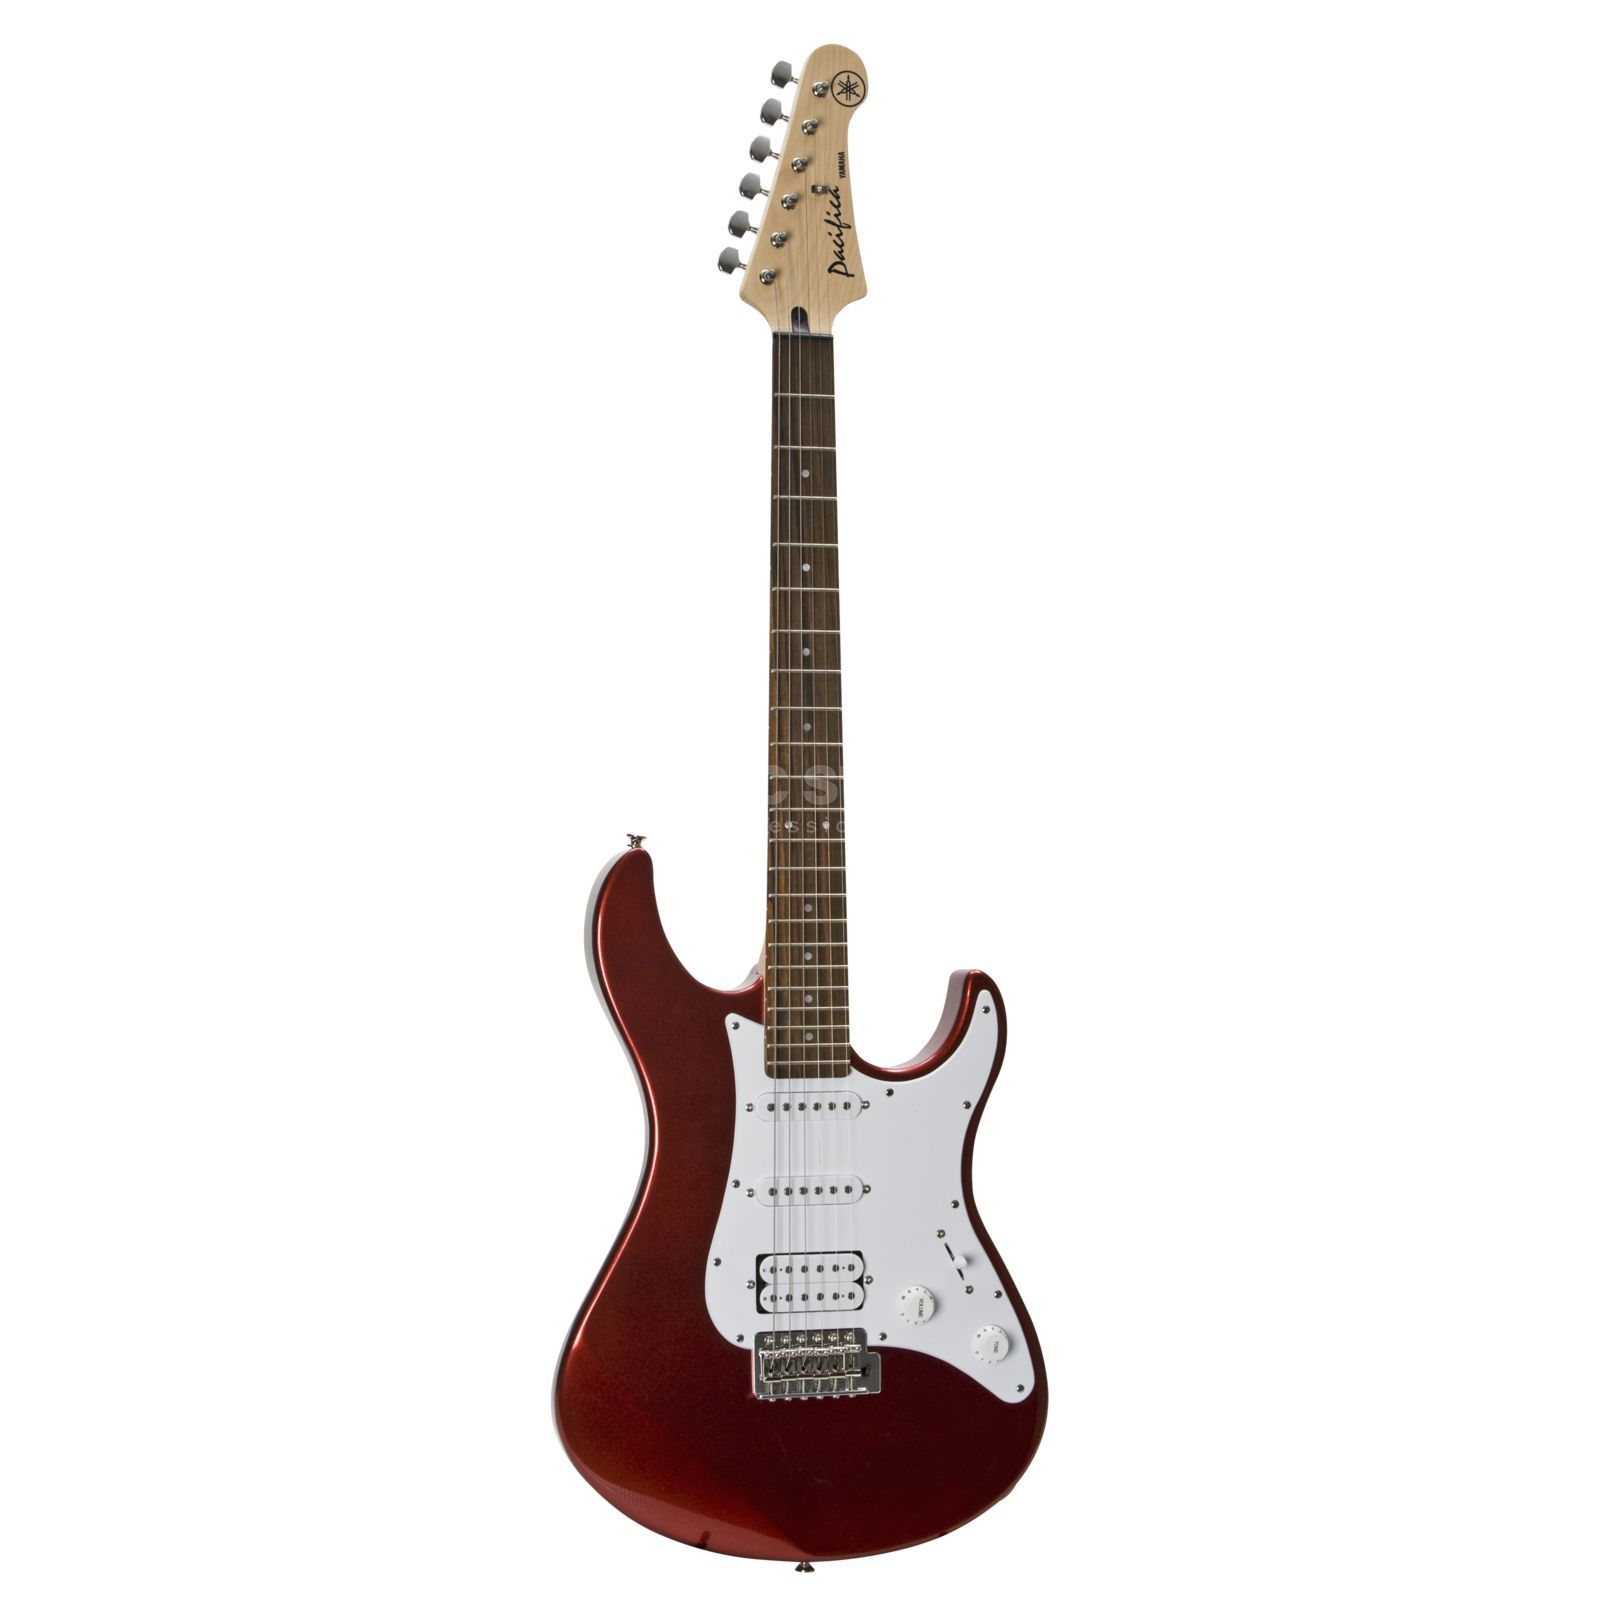 Yamaha Pacifica 012 Electric Guitar P ack, Red   Produktbillede